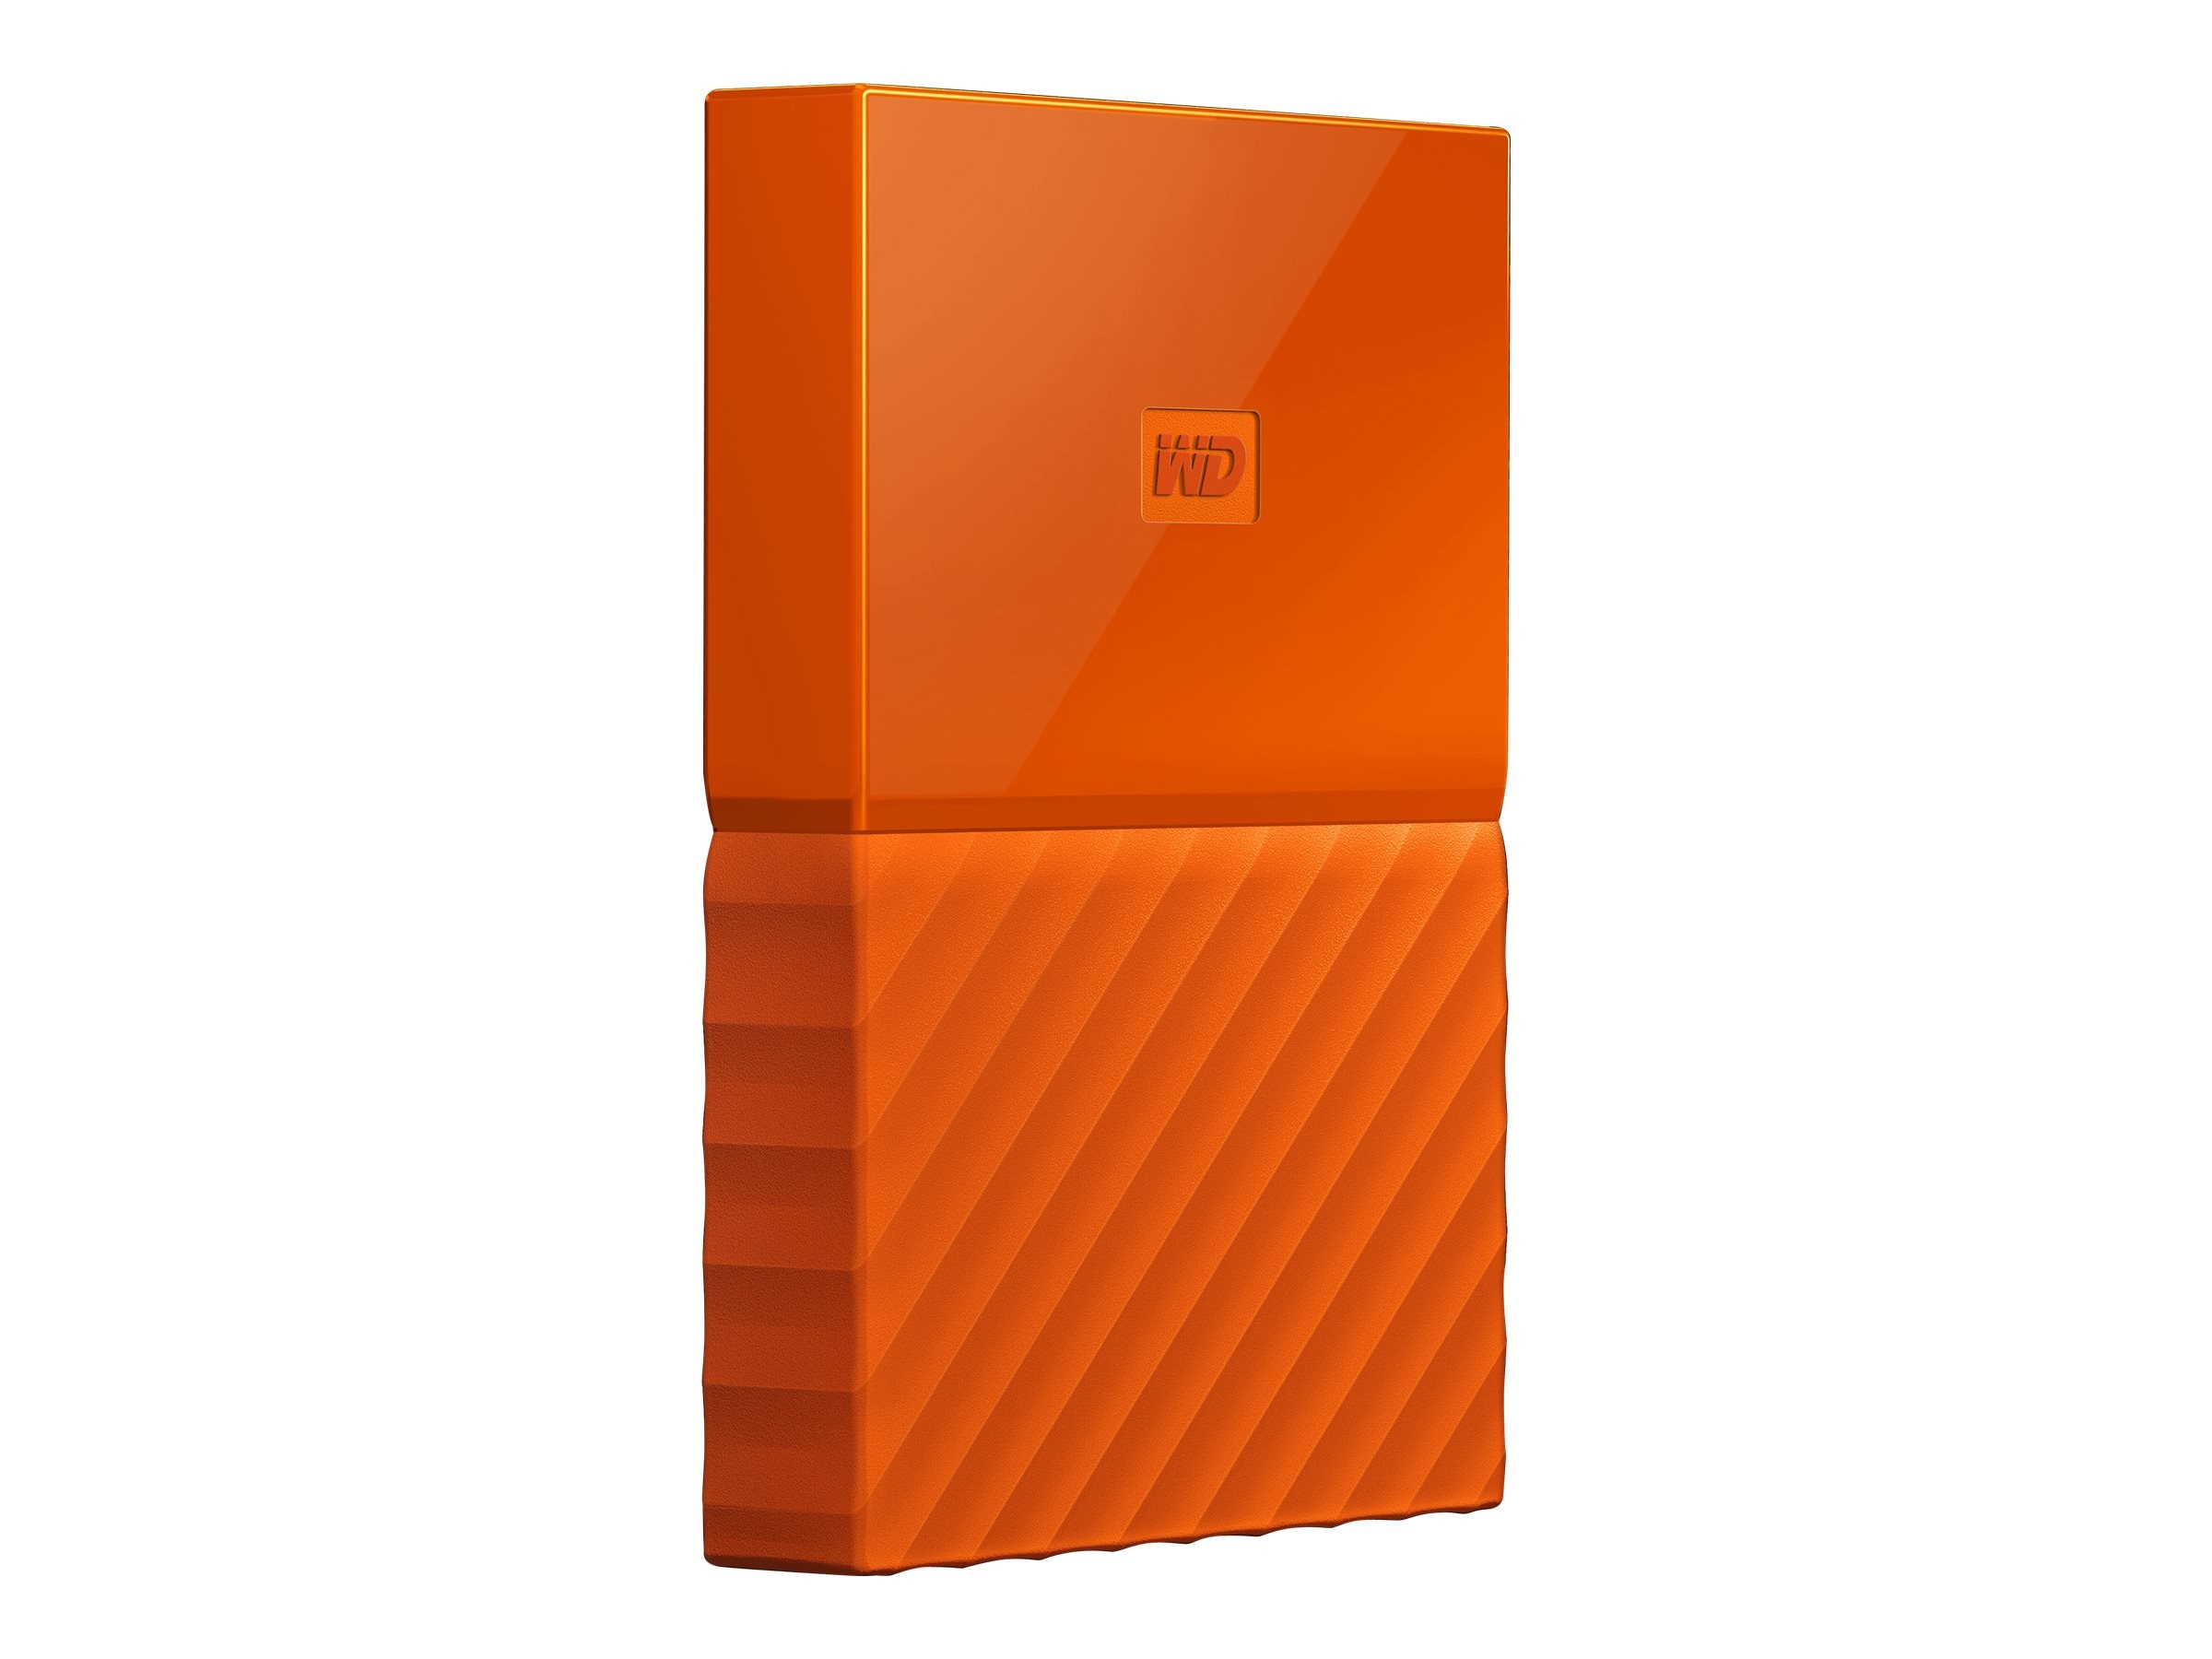 WD 4TB My Passport Portable, Orange, WDBYFT0040BOR-WESN